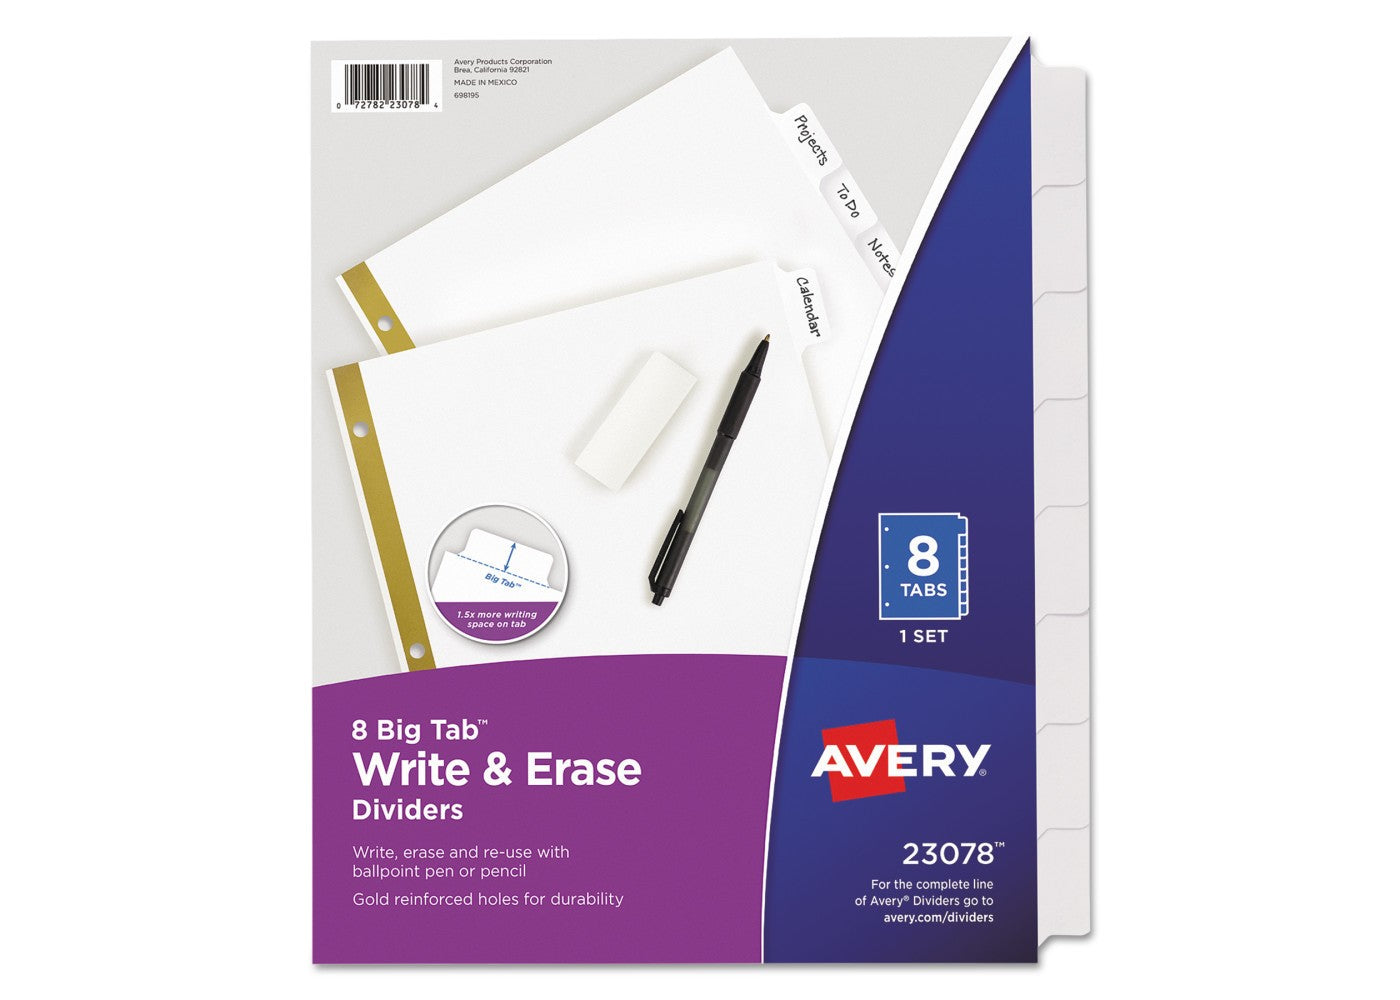 Avery Write & Erase Dividers, 8-Tab Set, 1 Set (23078)